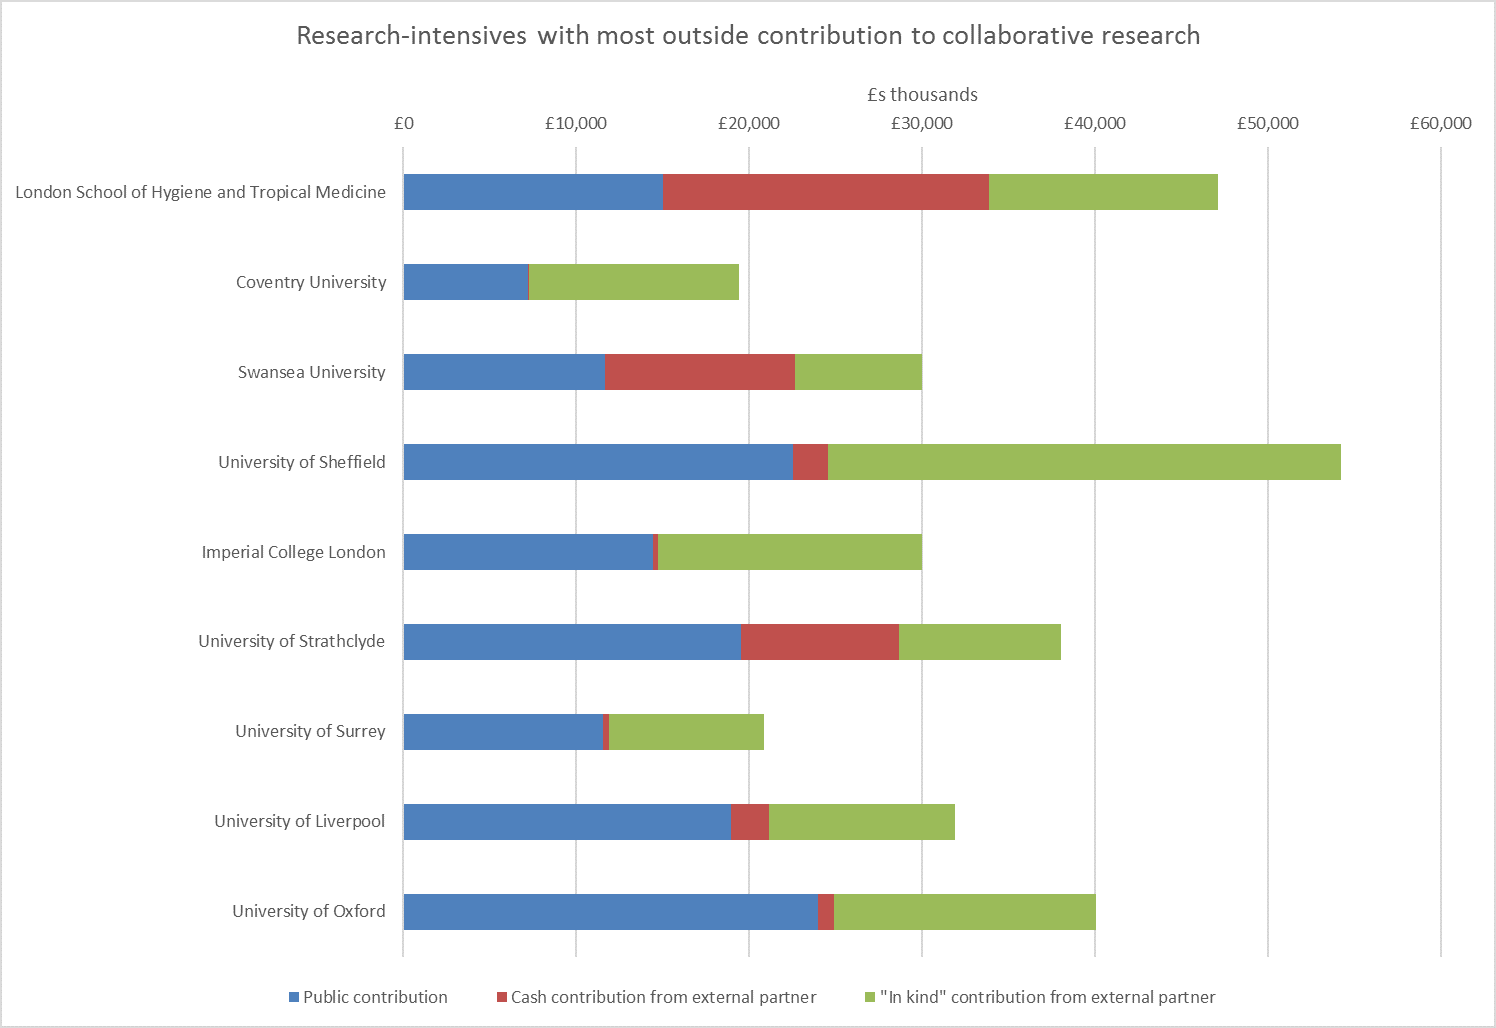 Research-intensives with most outside contribution to collaborative research